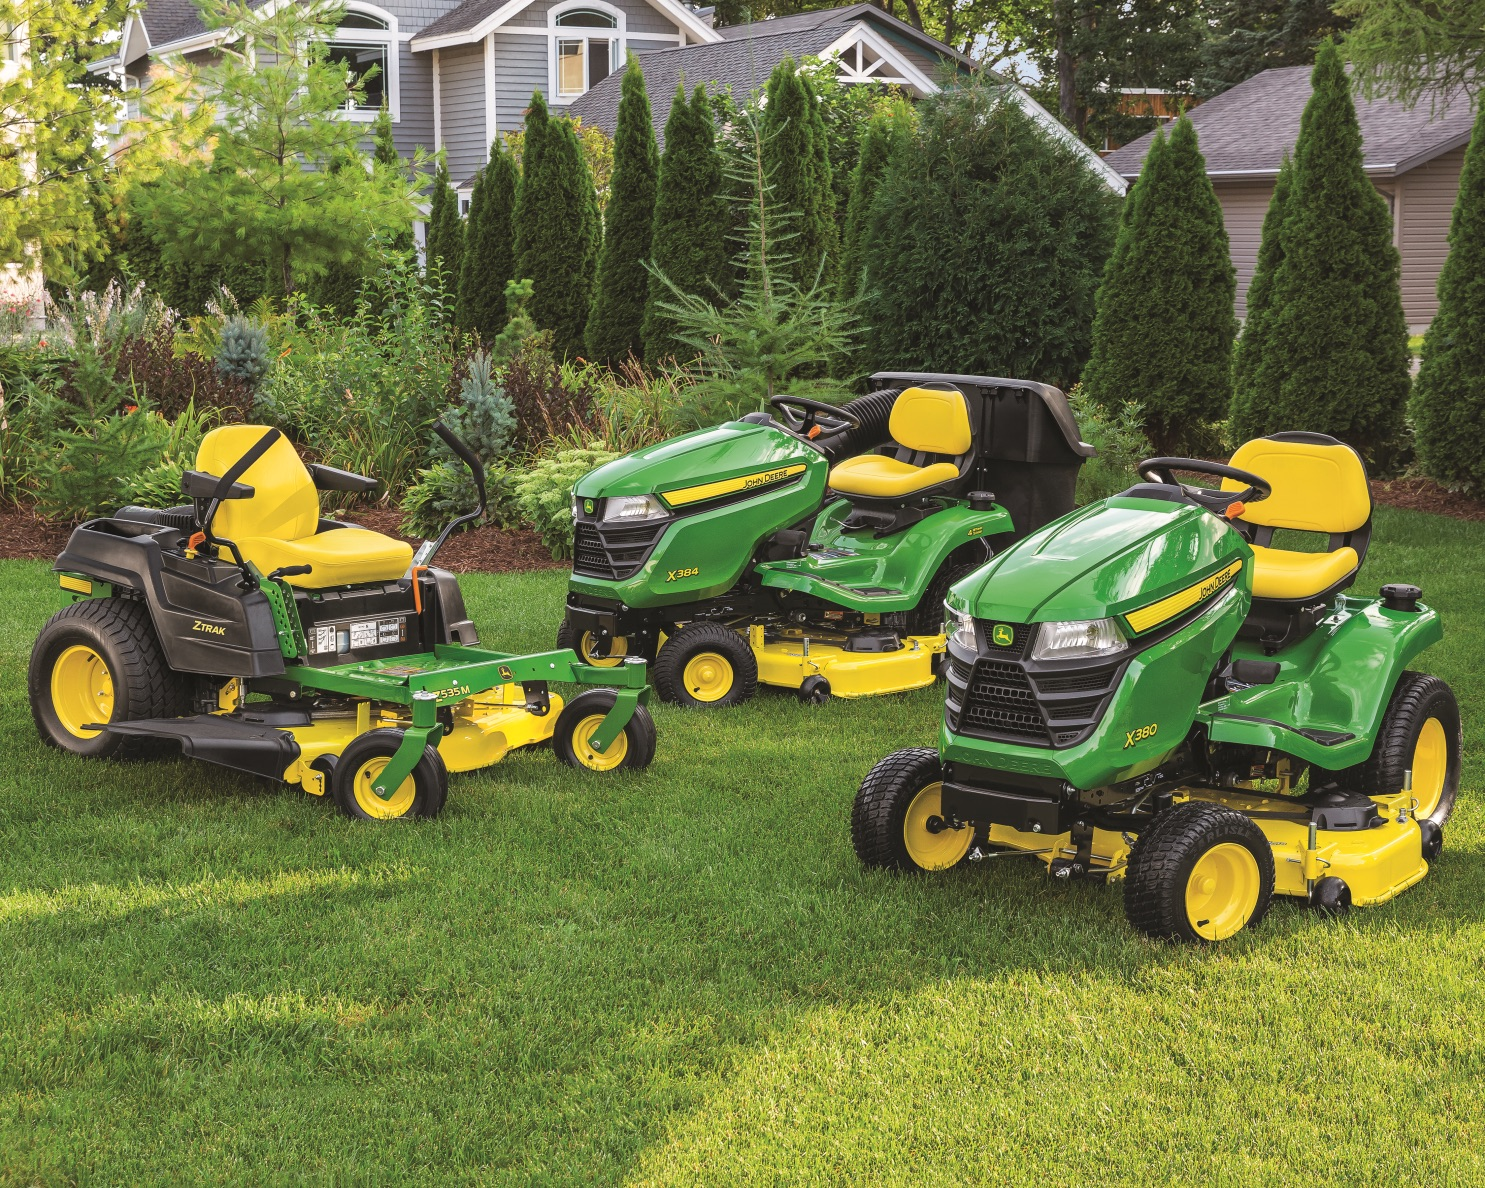 Riding-Lawn-Mowers_JohnDeere